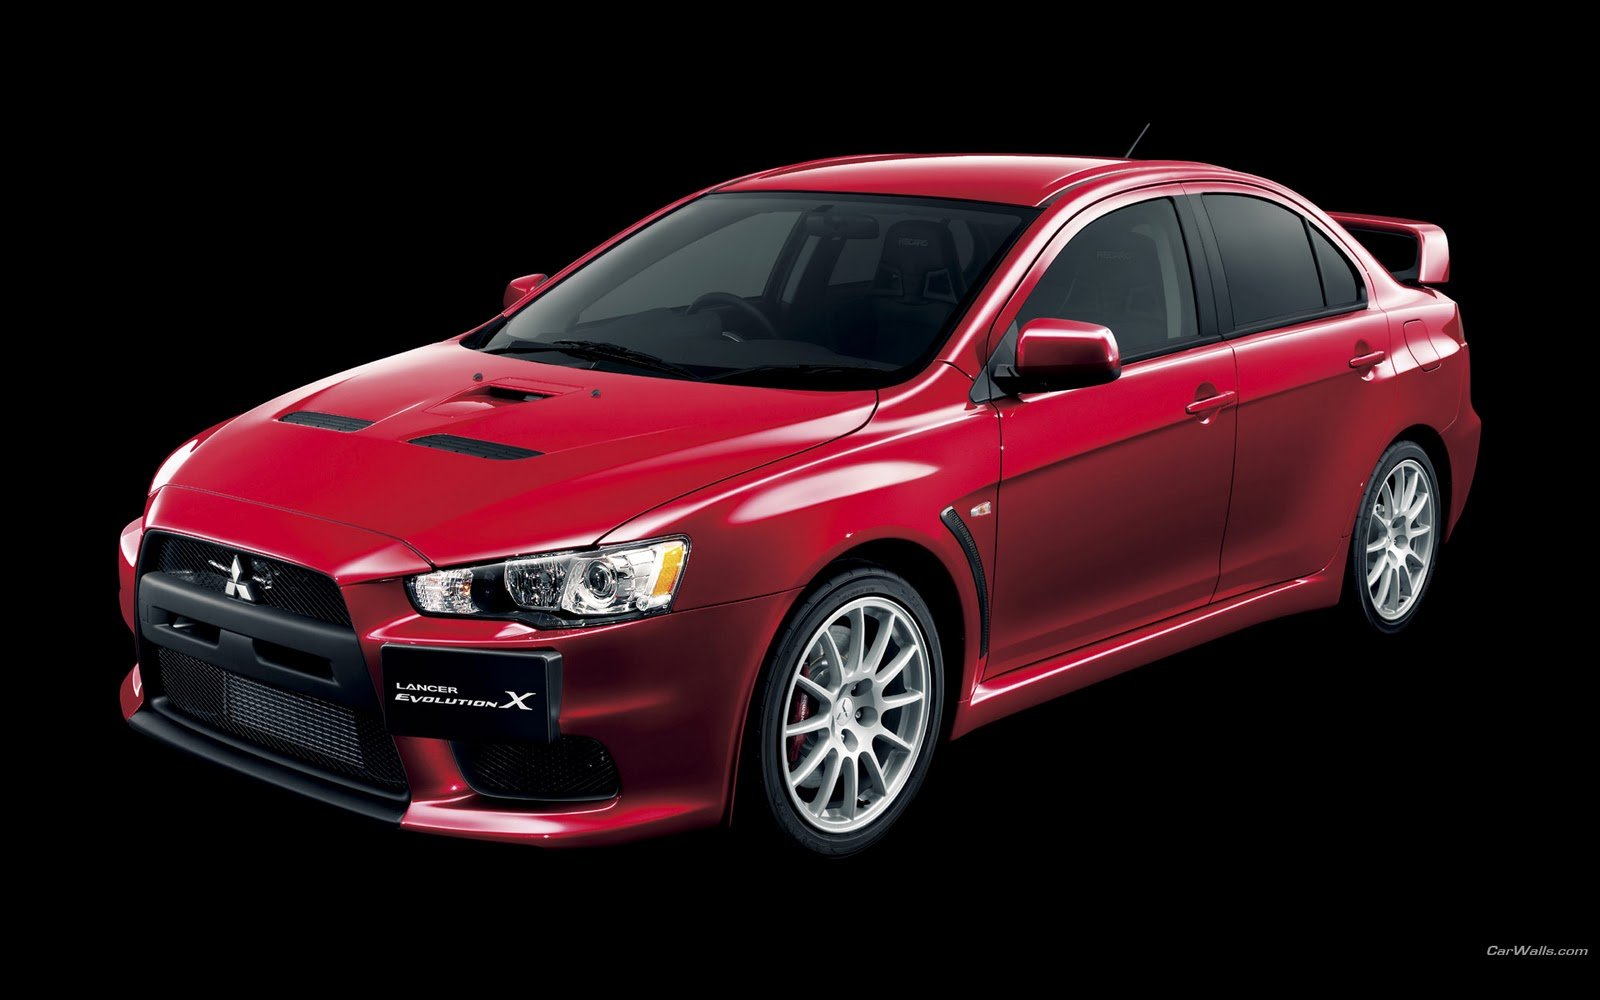 Latest All Types Of Autos Mitsubishi Cars Wallpapers Free Download